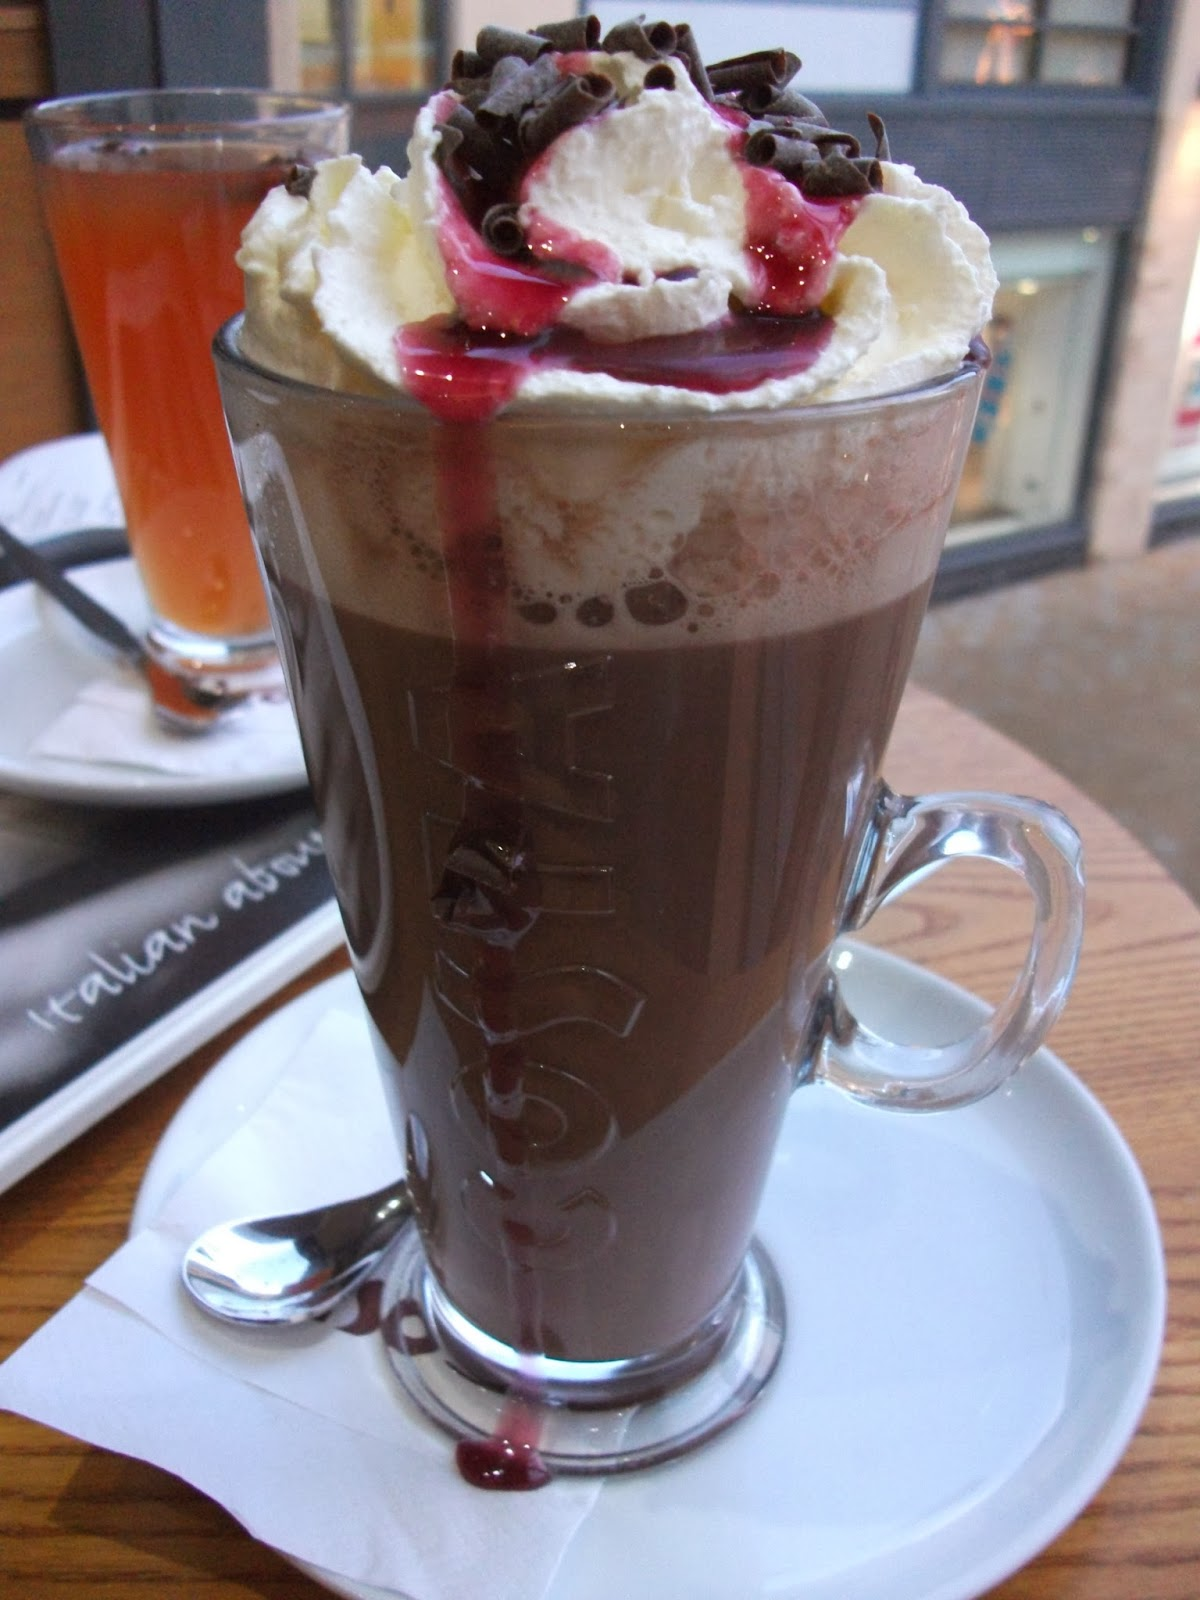 Kev's Snack Reviews: Costa Black Forest Hot Chocolate Review